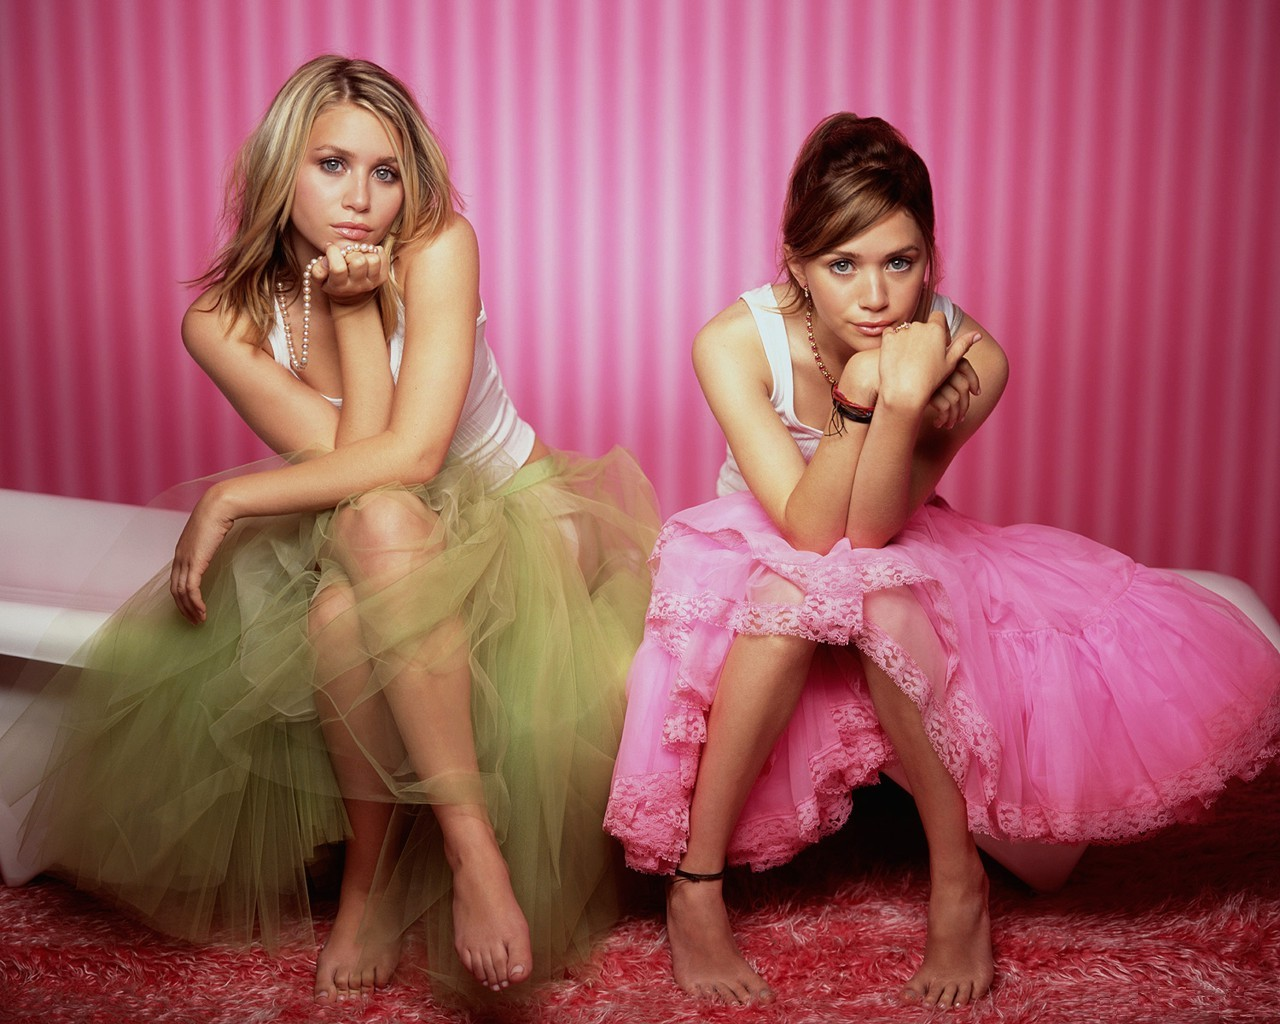 Mary kate and ashley nude pics #15